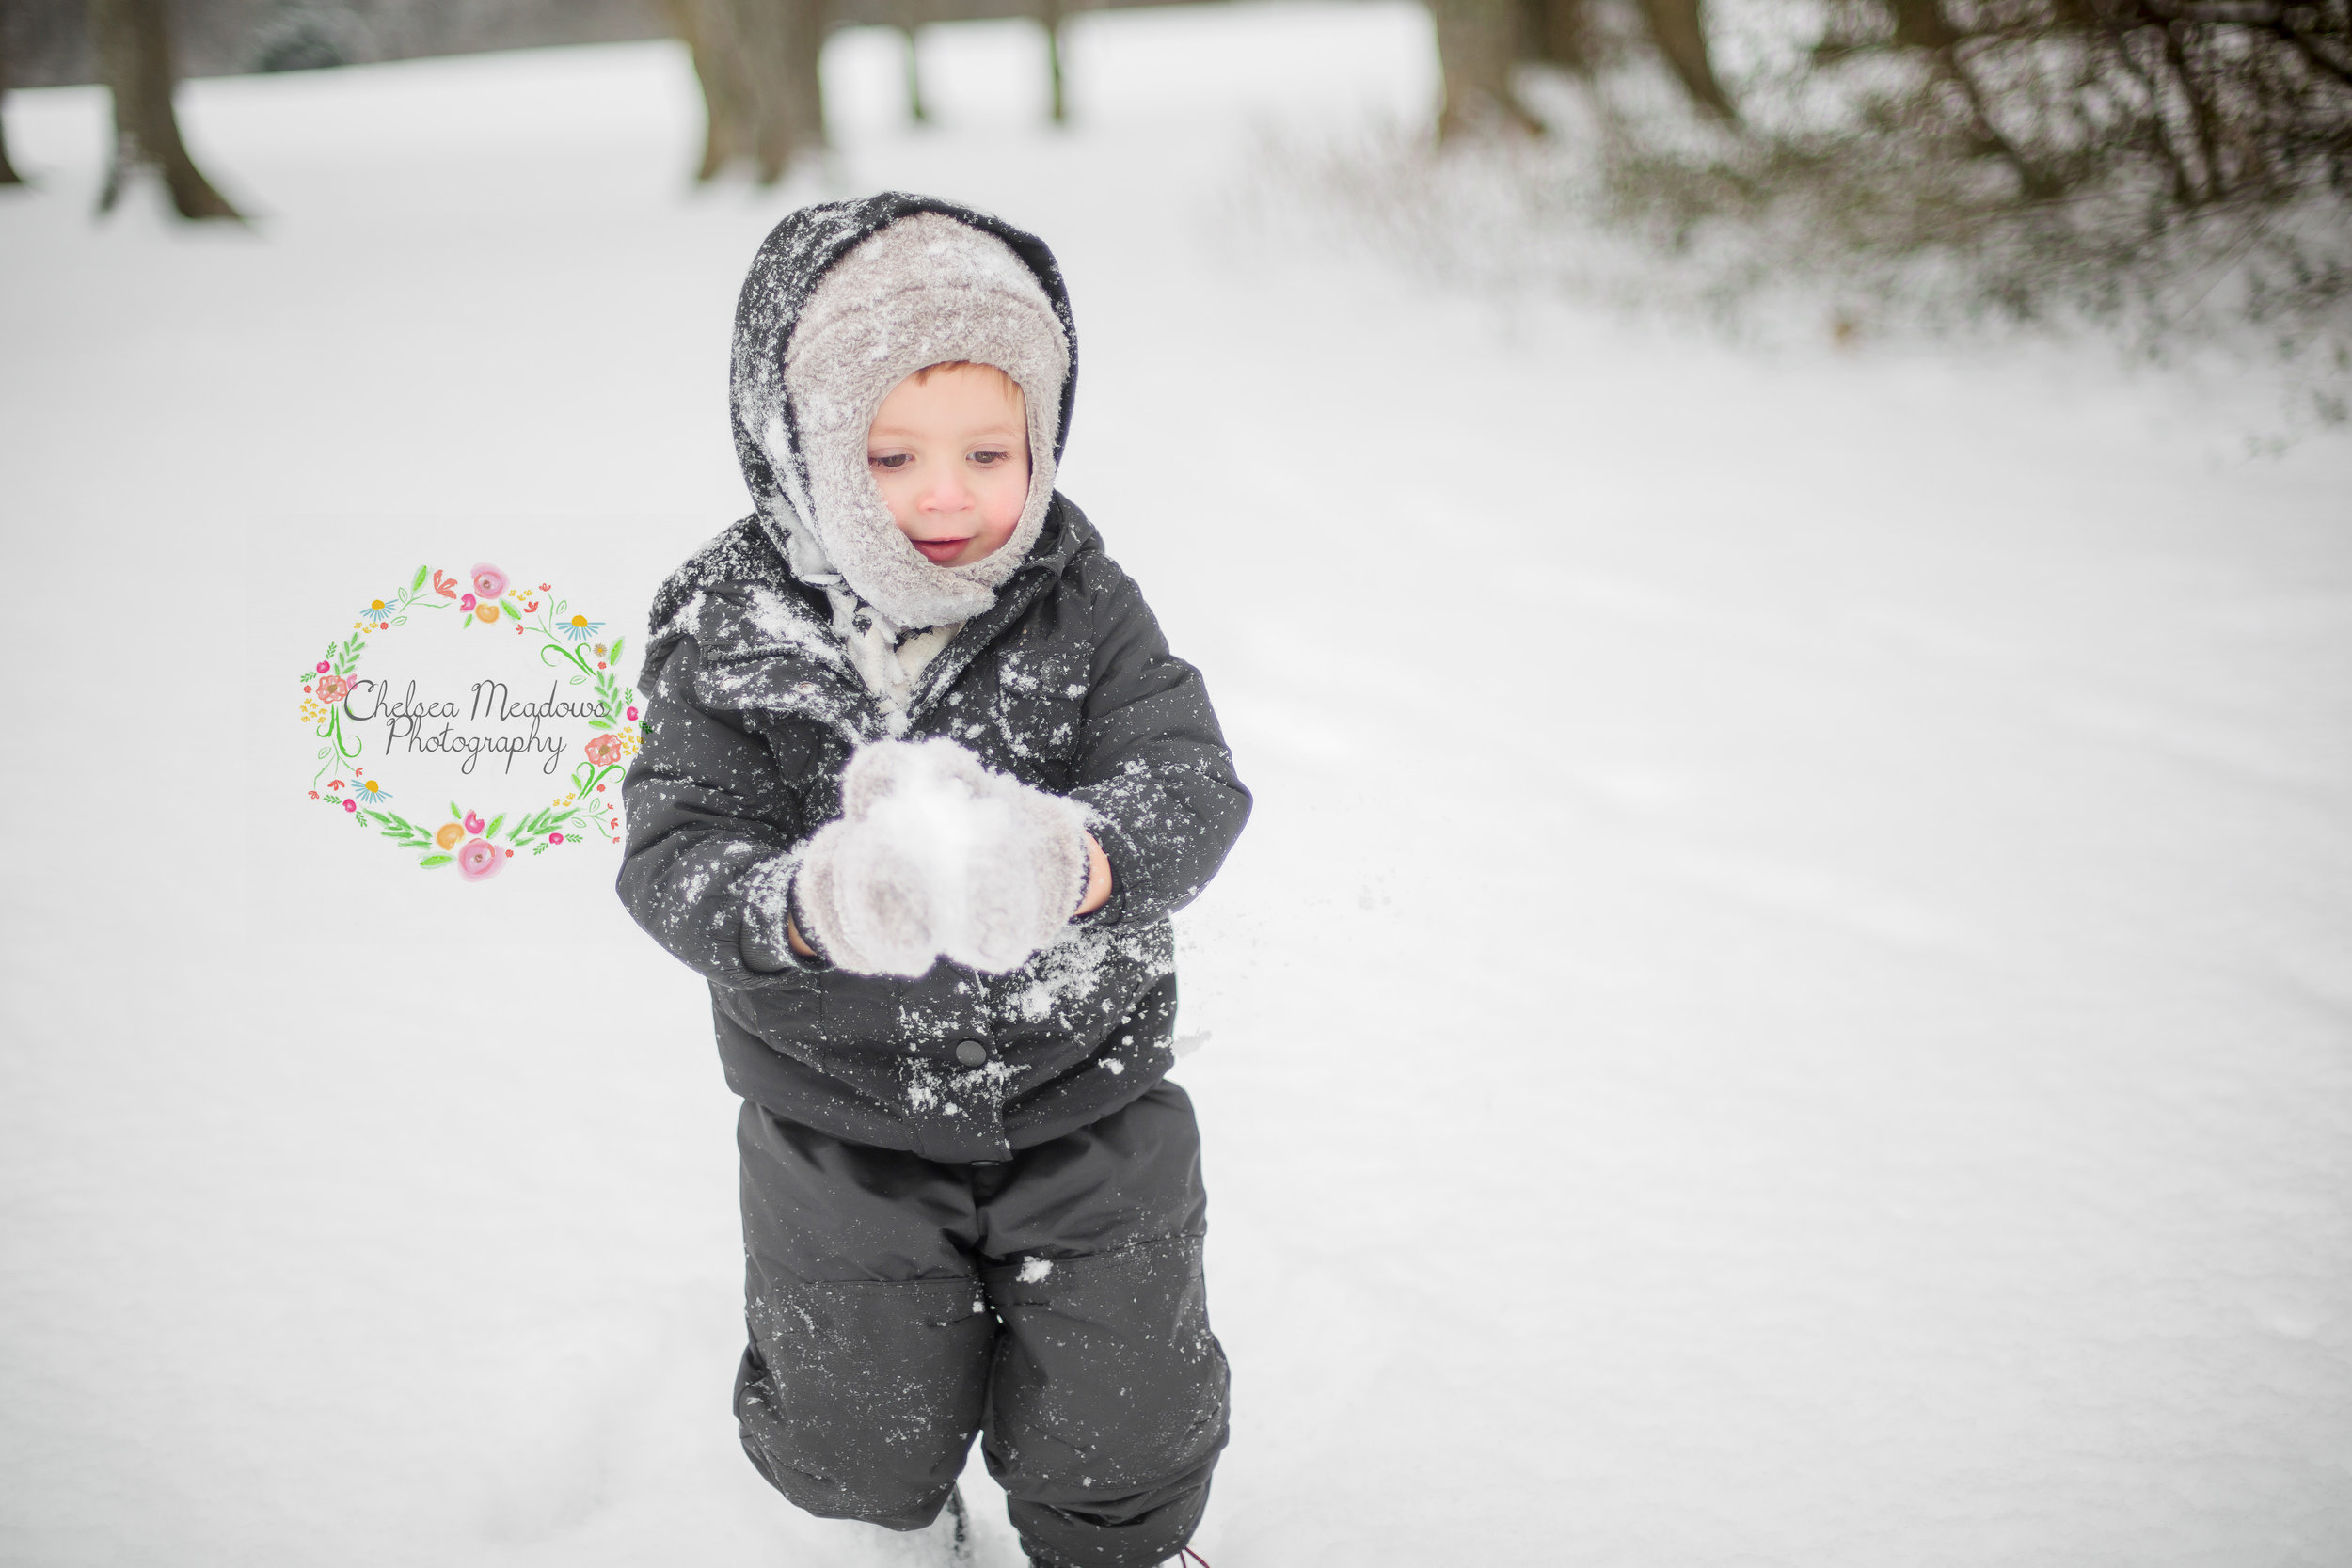 Ryder Snow Day 2018 - Nashville Family Photographer - Chelsea Meadows Photography (2).jpg